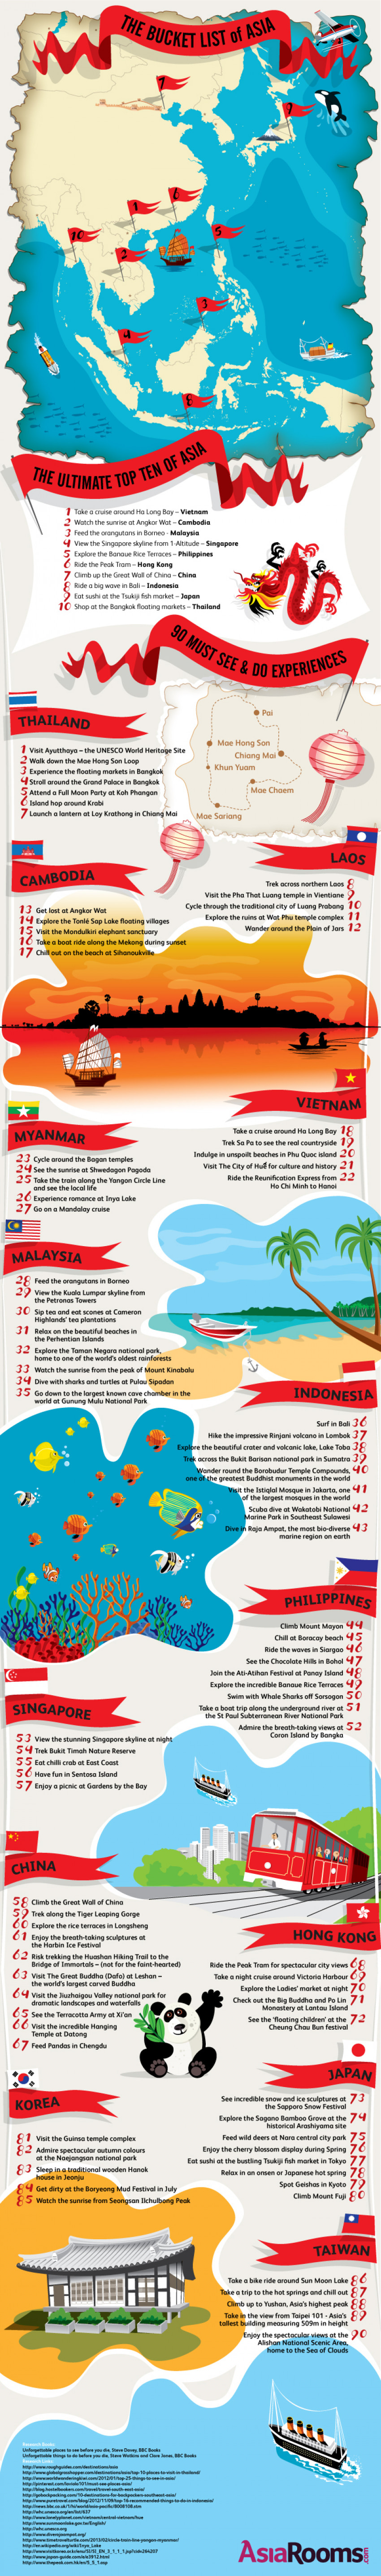 The Bucket List of Asia